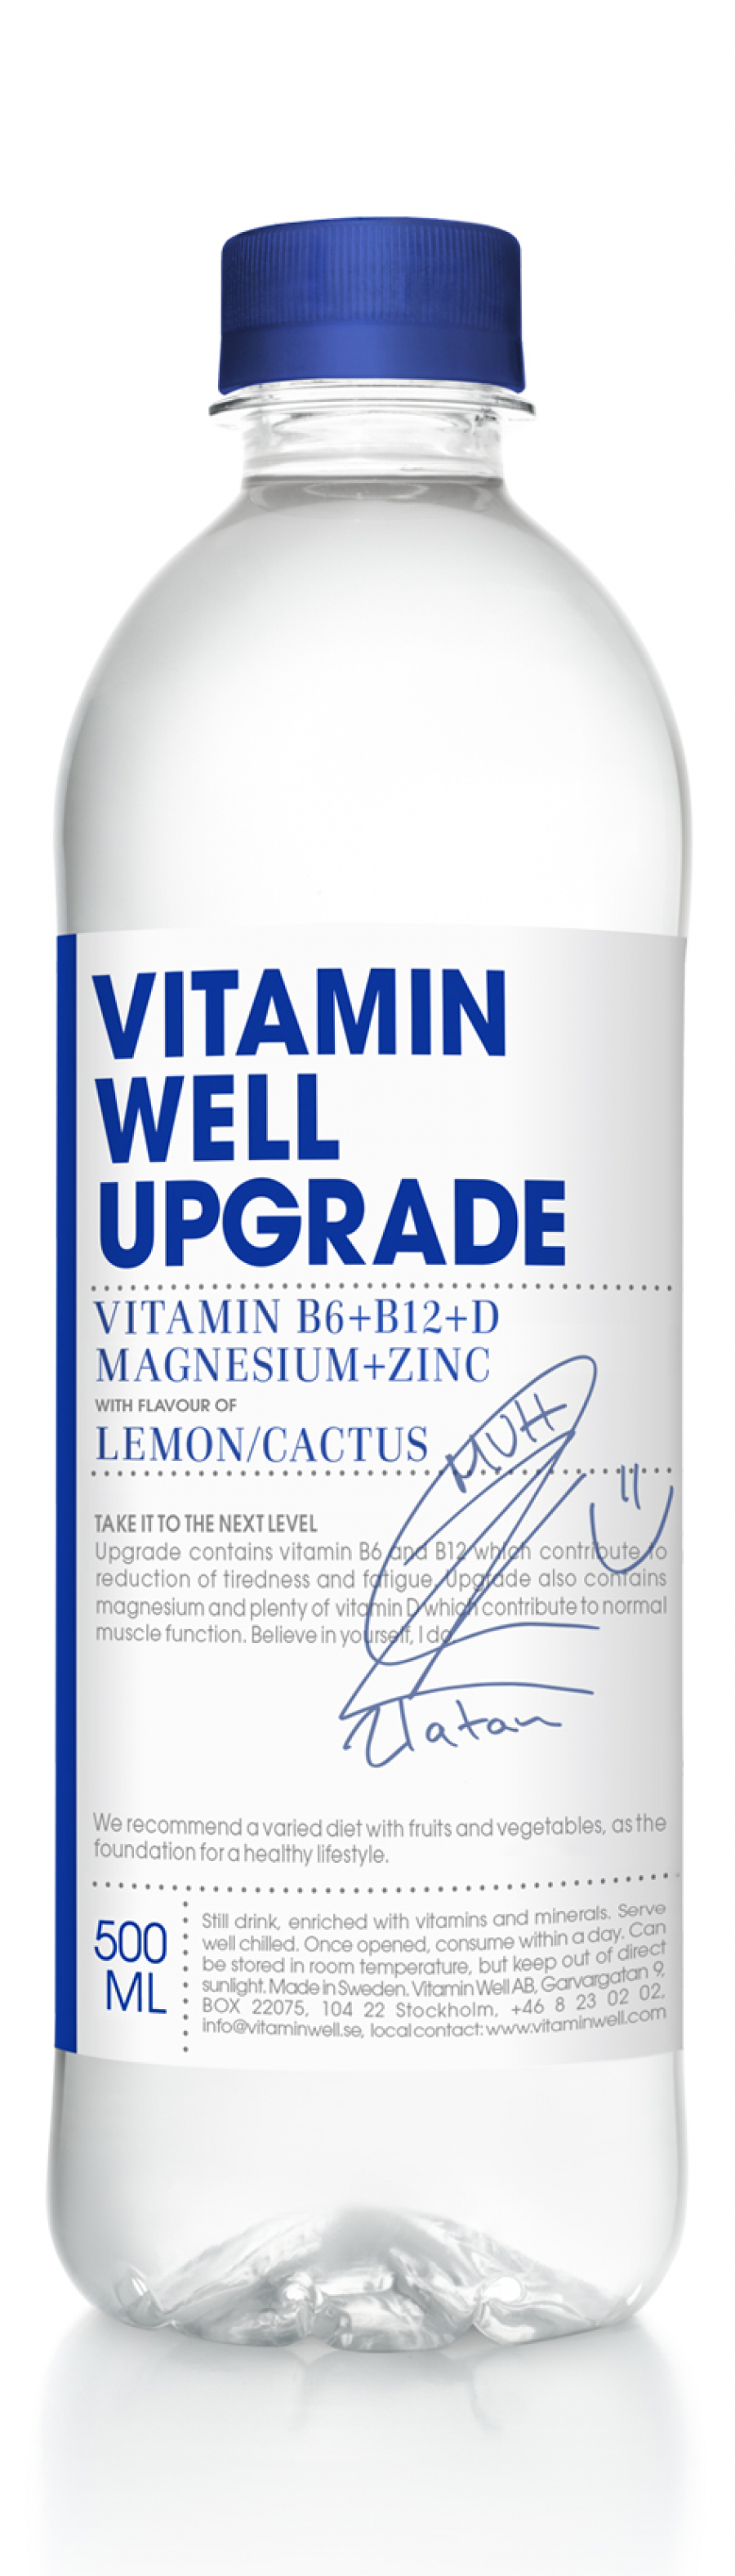 Vitamin Well Upgrade 500ml